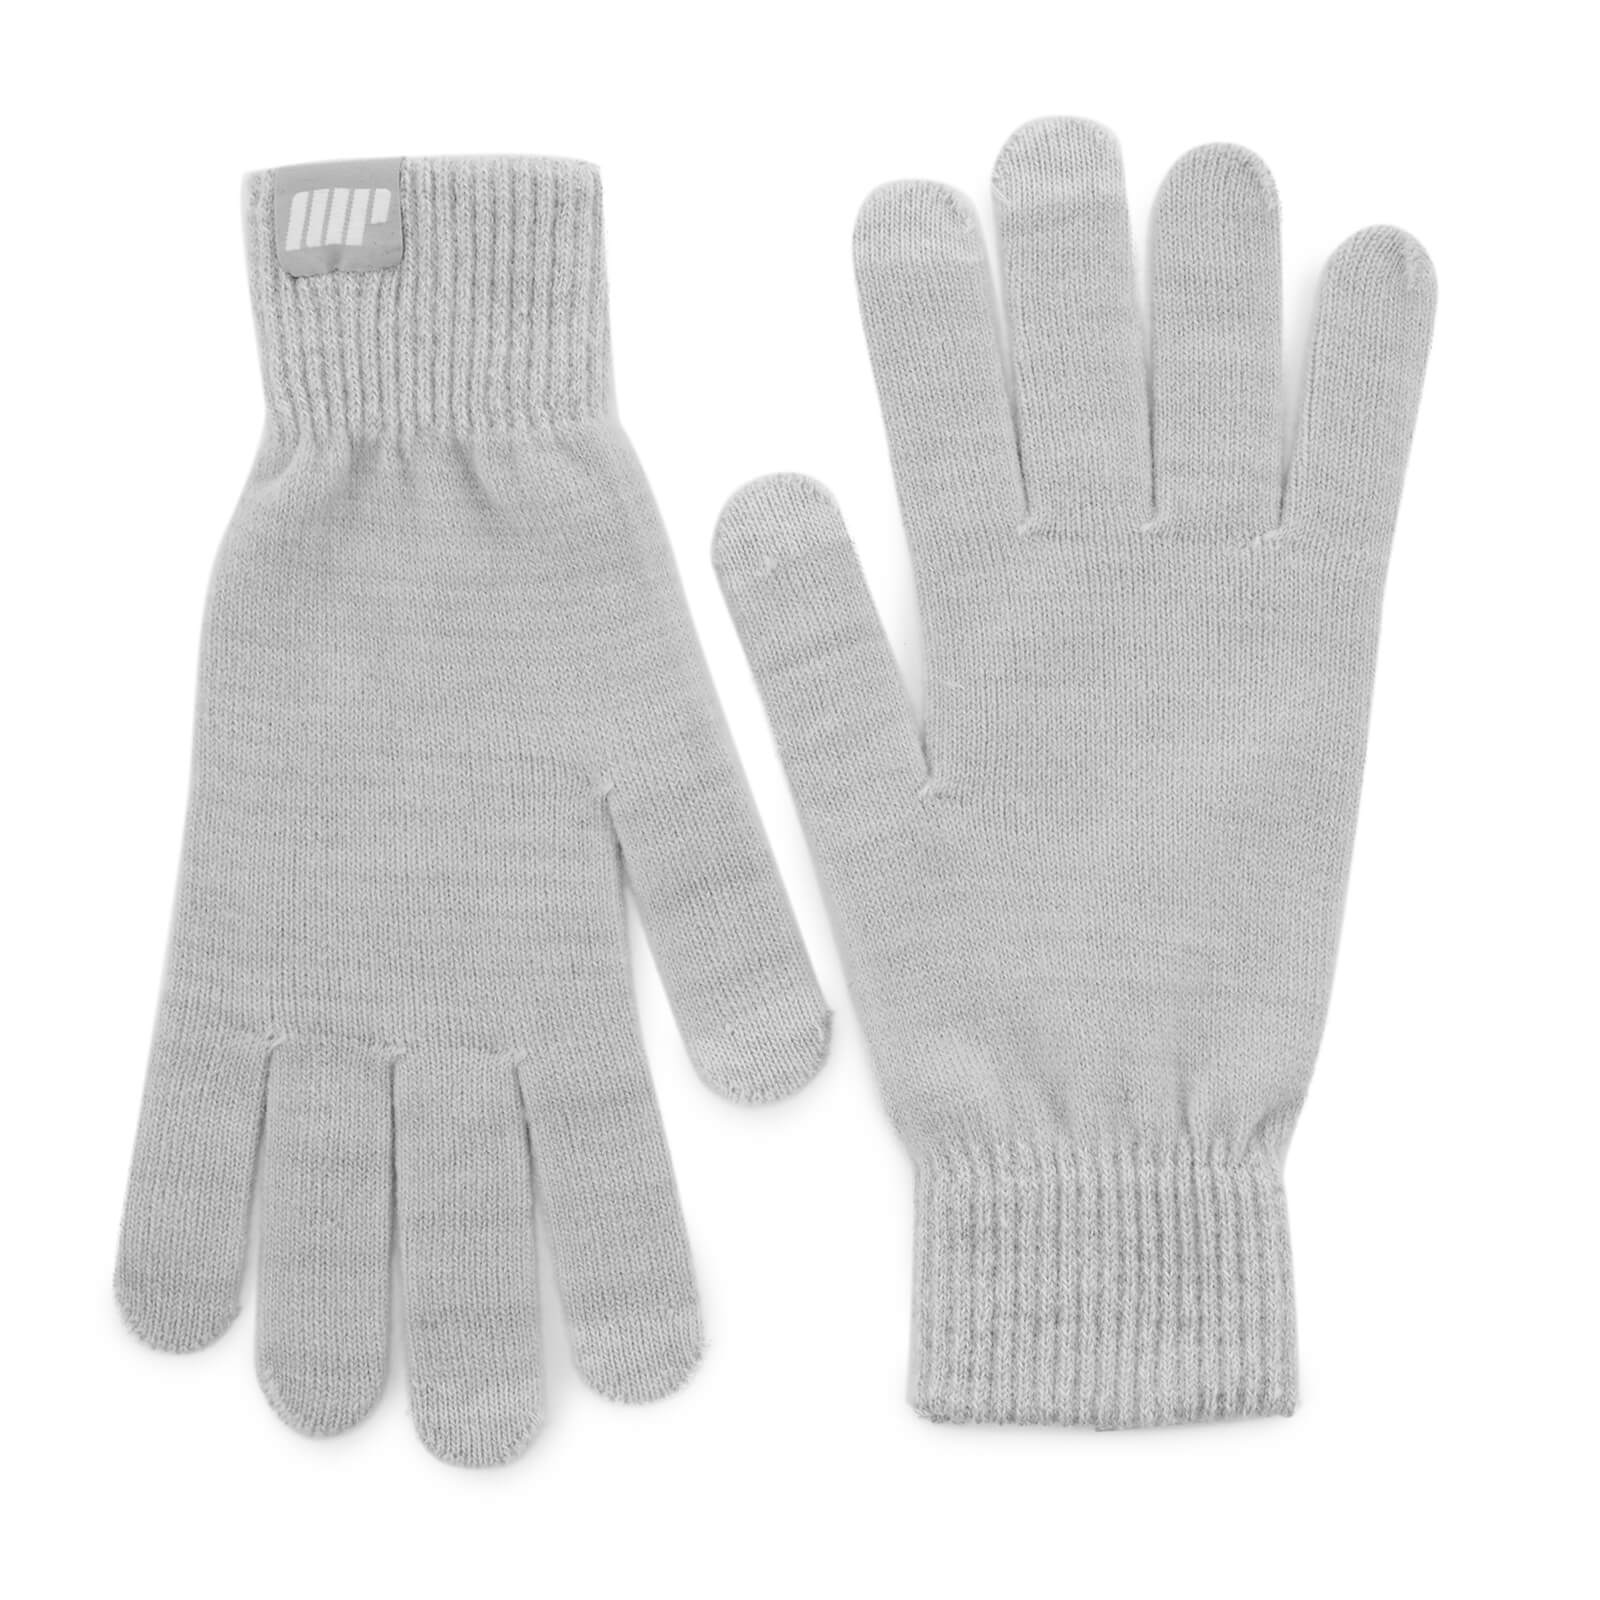 Myprotein Knitted Gloves - Grey - S/M